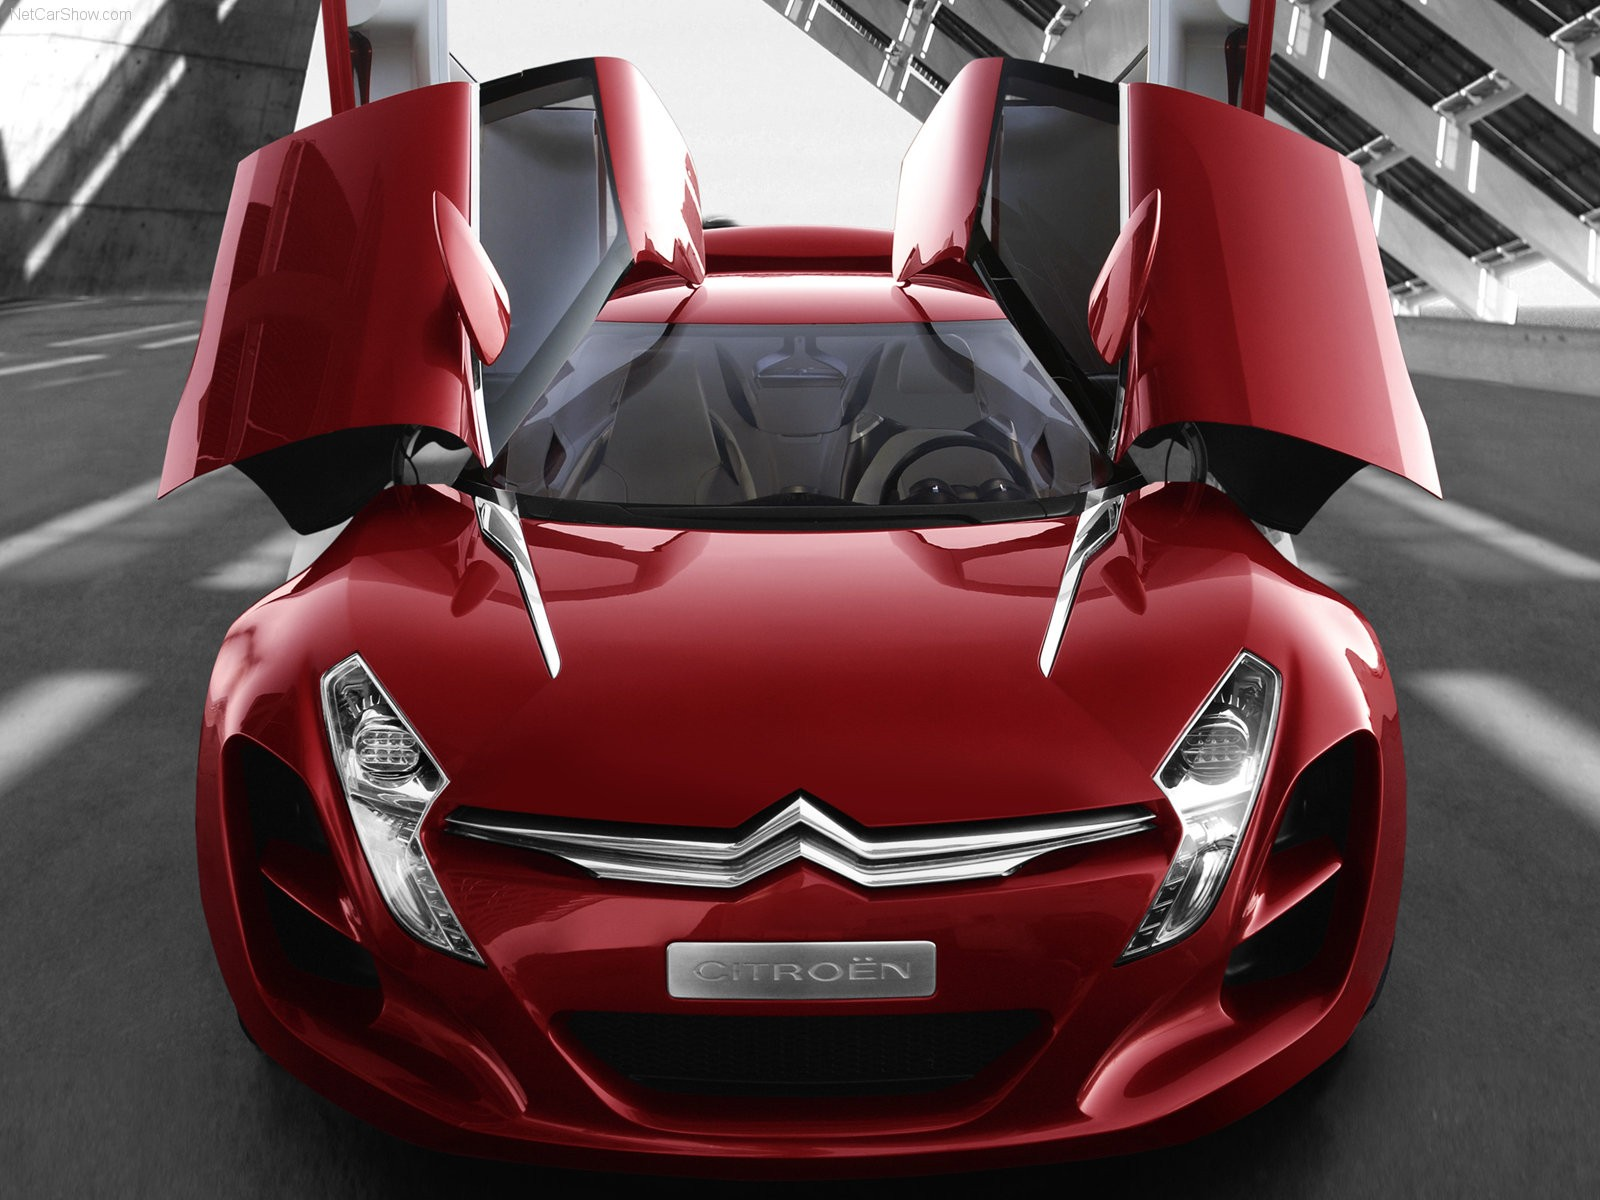 Citroen Car Automotive French Cars The Based Company Innovative In Itself For Being First European Mass Market Manufacture Was Later Formed Into Psa Peugeot Group